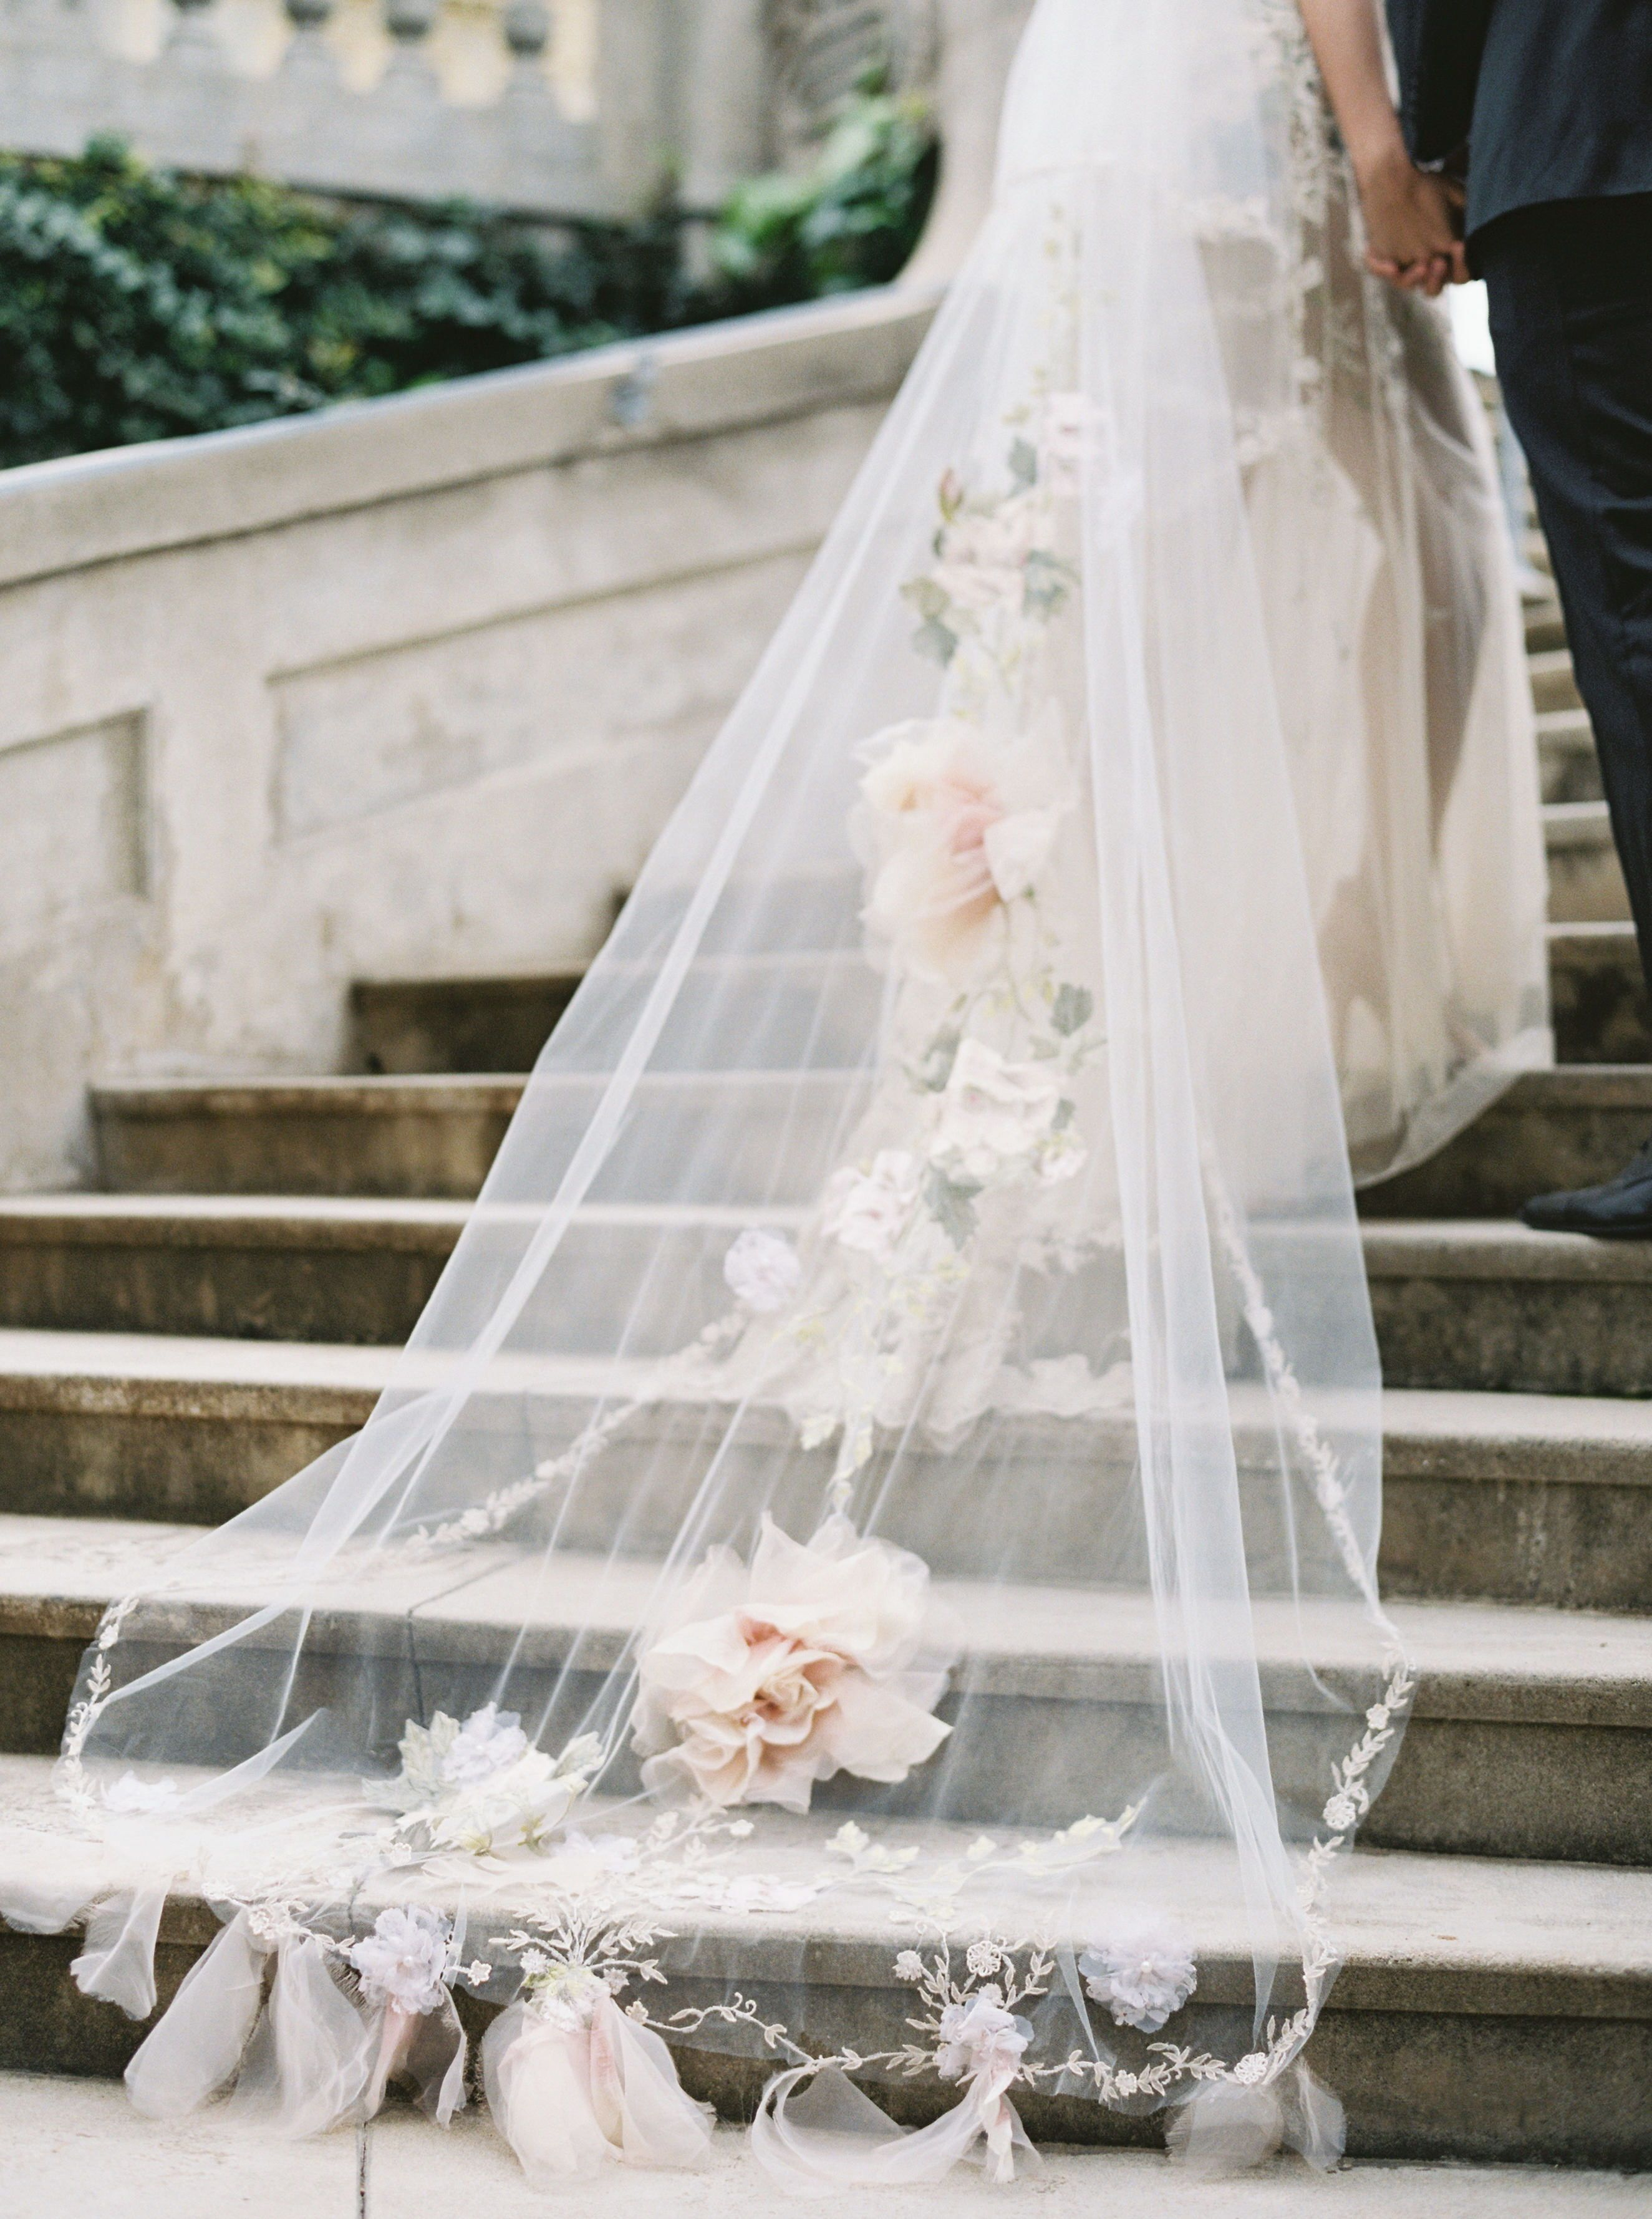 Nontraditional Wedding Veils For The Fashion Forward Bride Nontraditional Wedding Spring Wedding Inspiration Wedding [ 3558 x 2649 Pixel ]